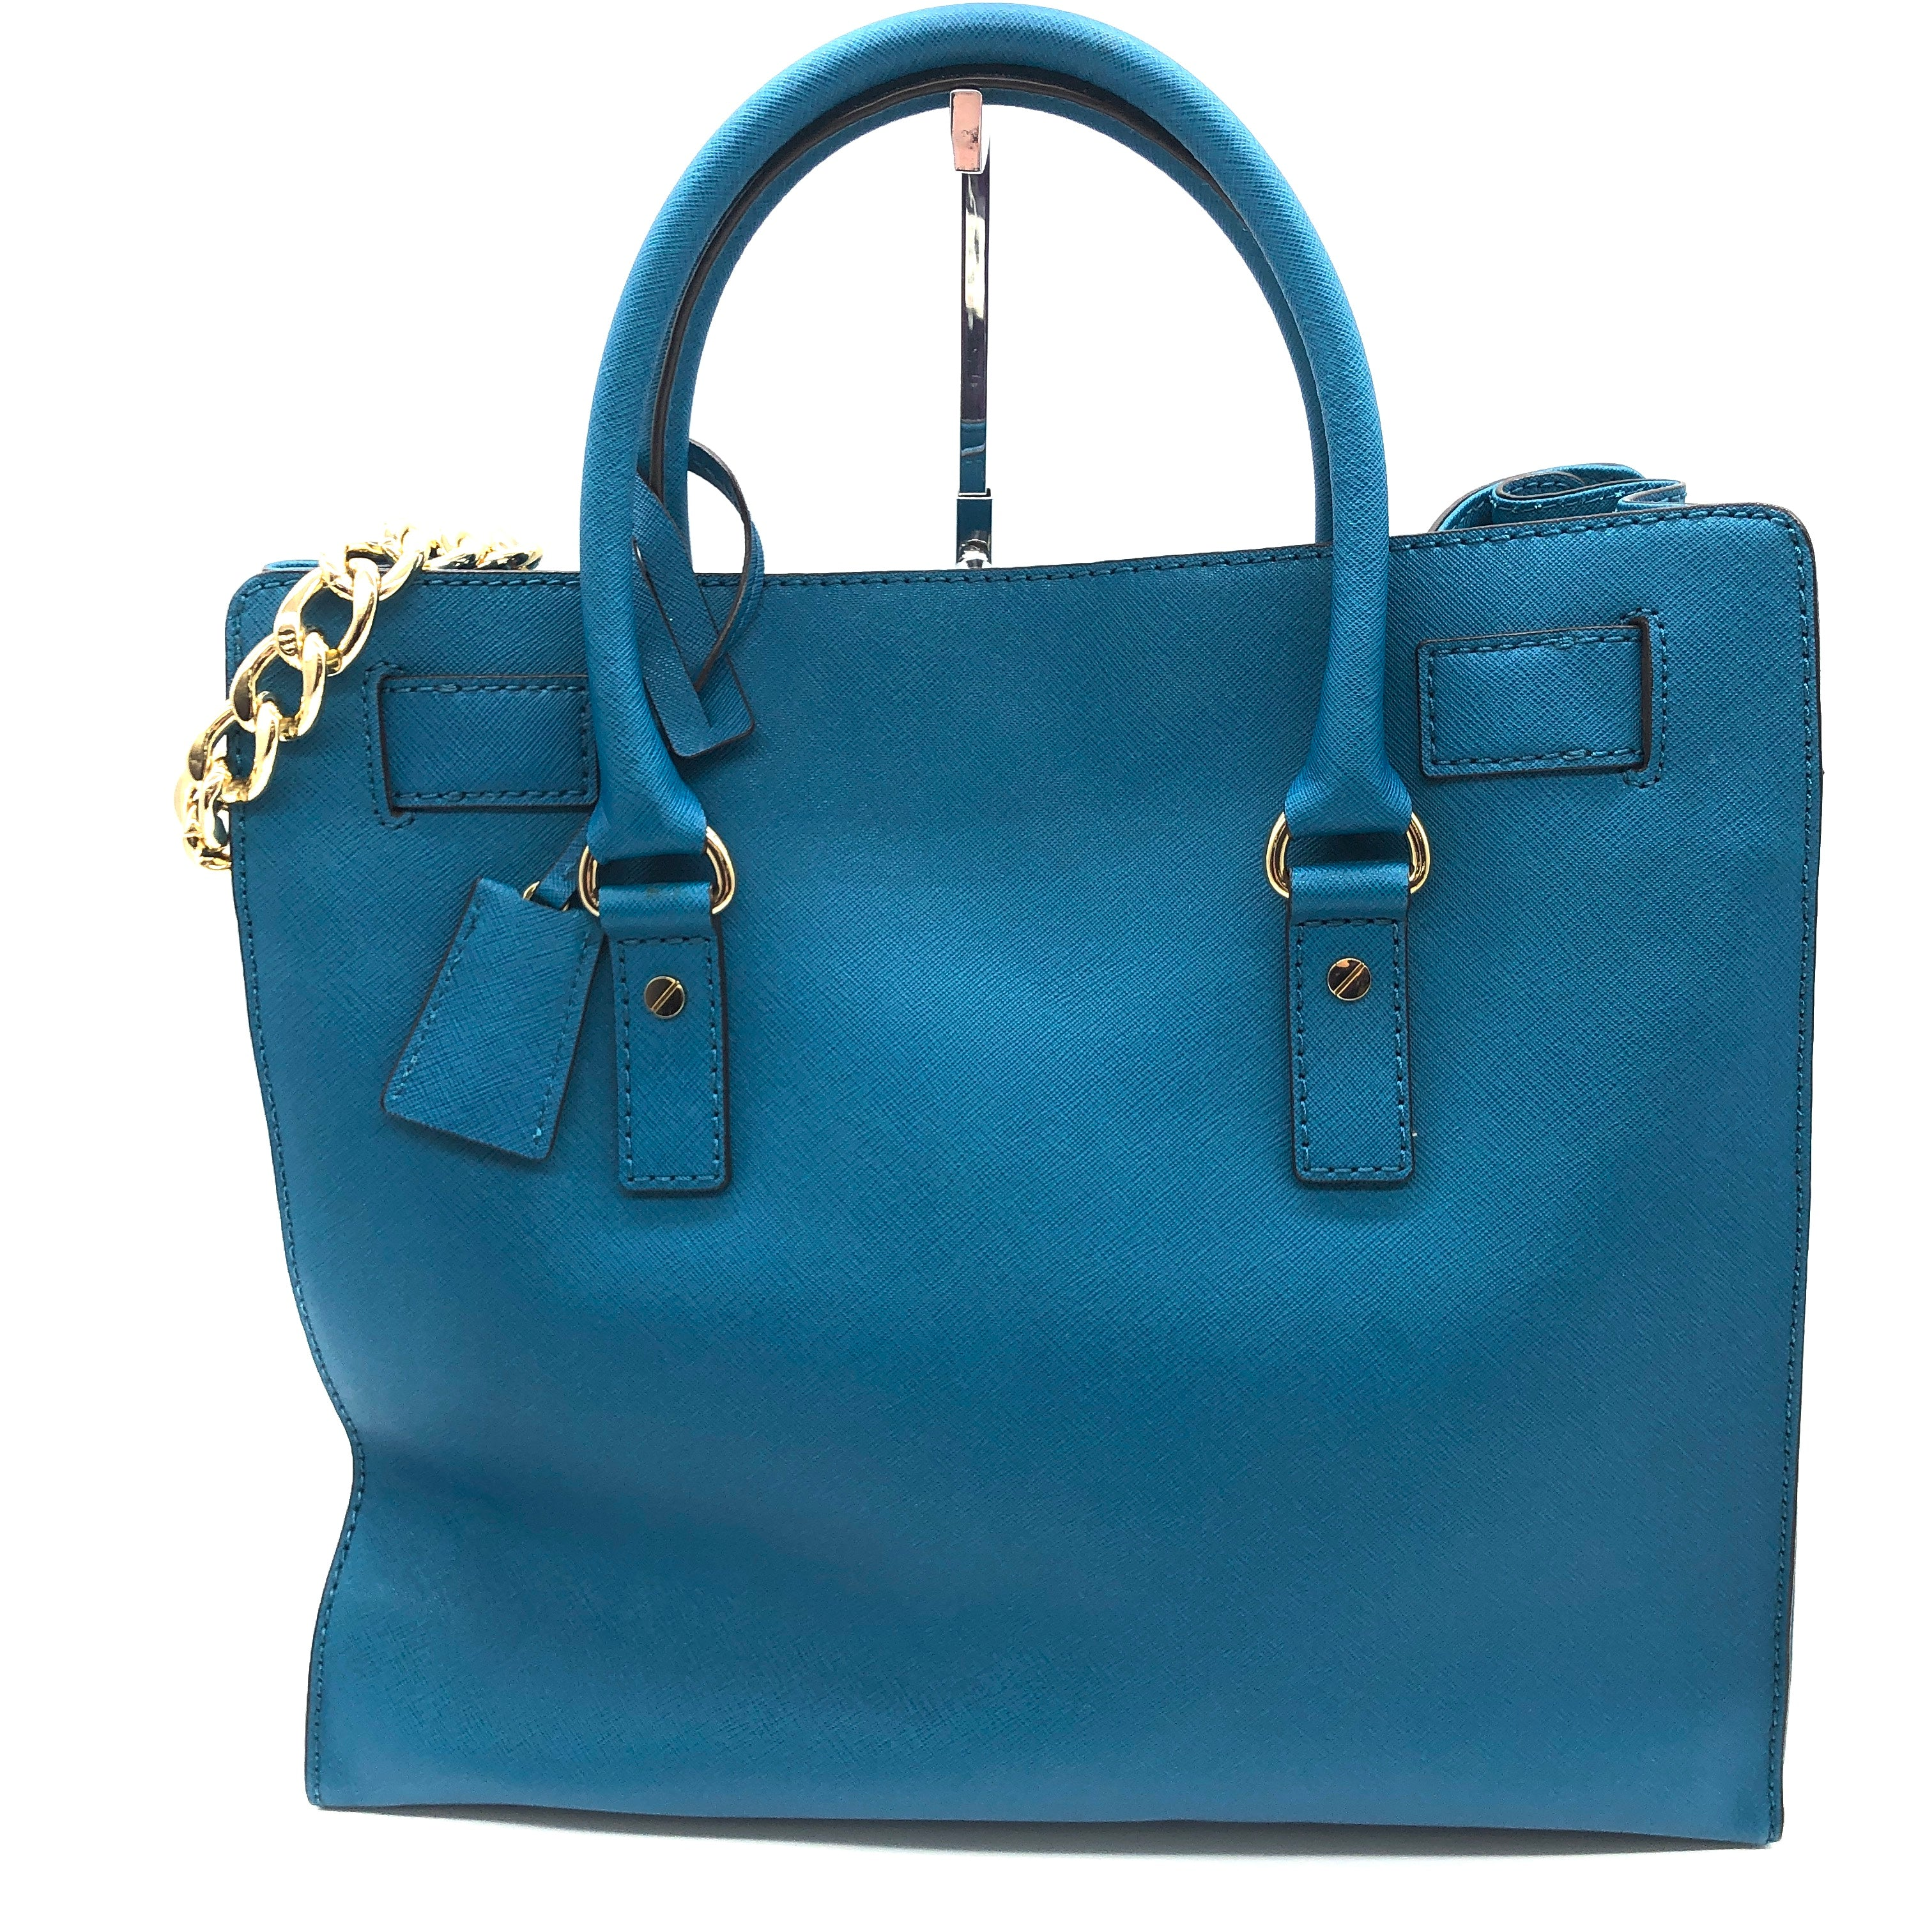 "Photo #1 - BRAND: MICHAEL KORS <BR>STYLE: HANDBAG DESIGNER <BR>COLOR: TEAL <BR>SIZE: MEDIUM <BR>SKU: 262-26275-74195<BR><BR>APPROX. 14.25""L X 13.5""H X 5.5""D. COLOR IS TEAL BUT TINT MAY BE SLIGHTLY BLUER THAN PHOTO SHOWS"